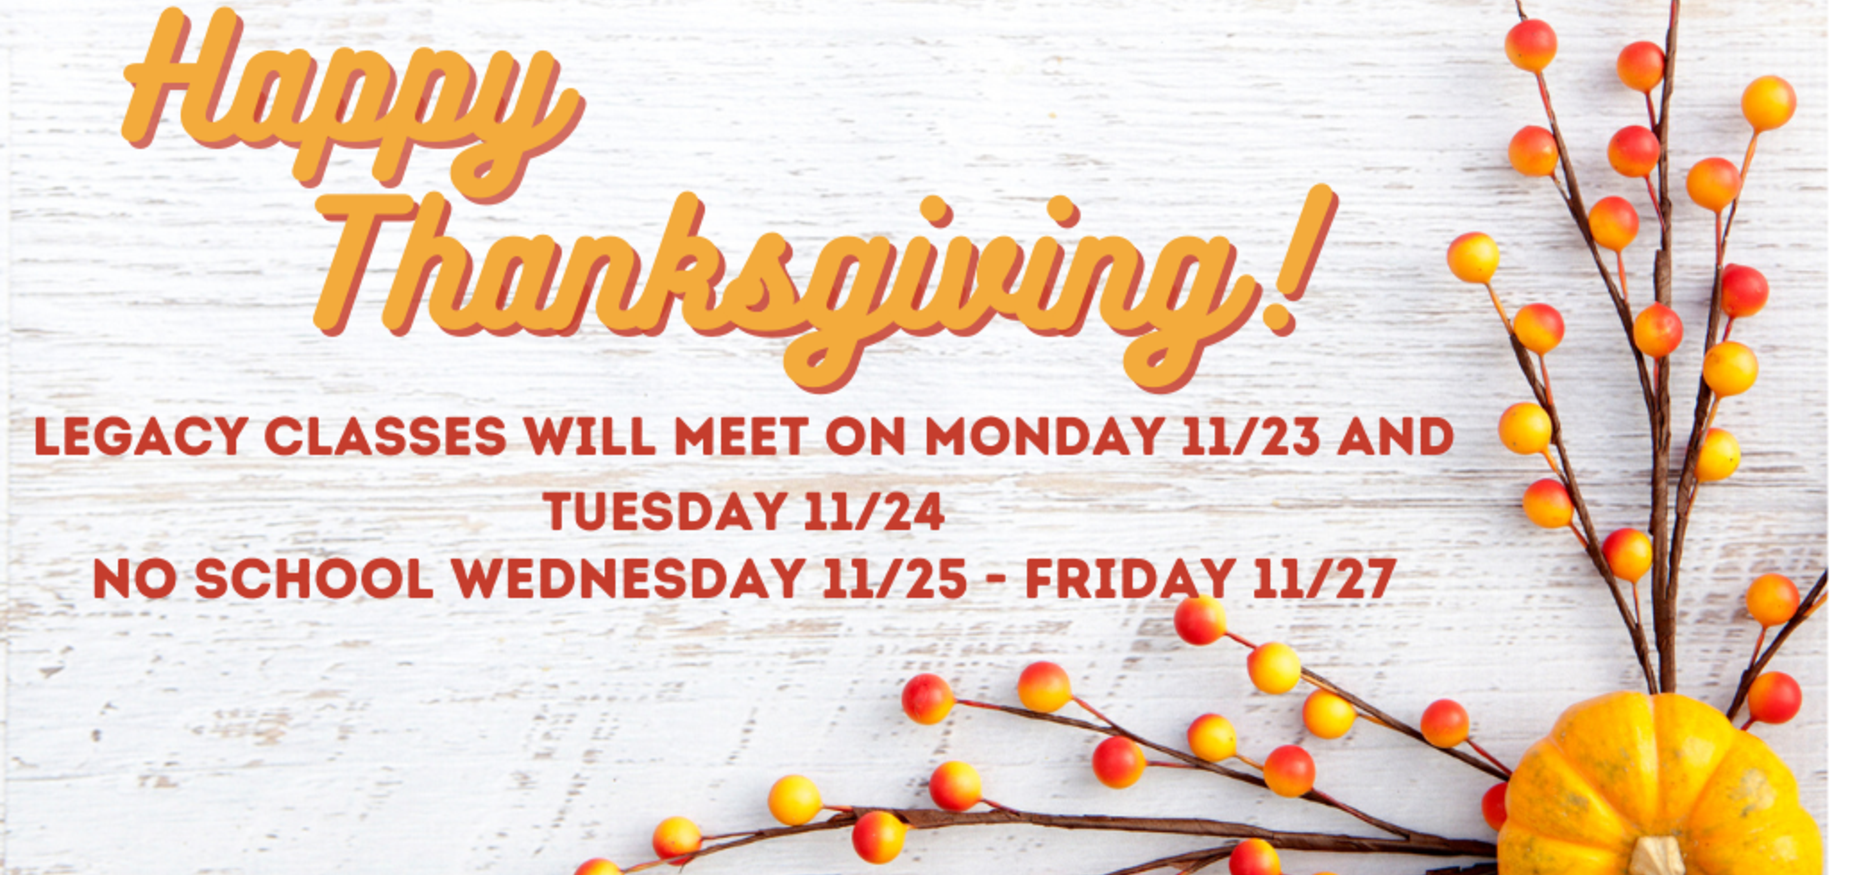 Legacy classes will meet on Monday and Tuesday 11/23-24. No school Wednesday - Friday for Thanksgiving Break